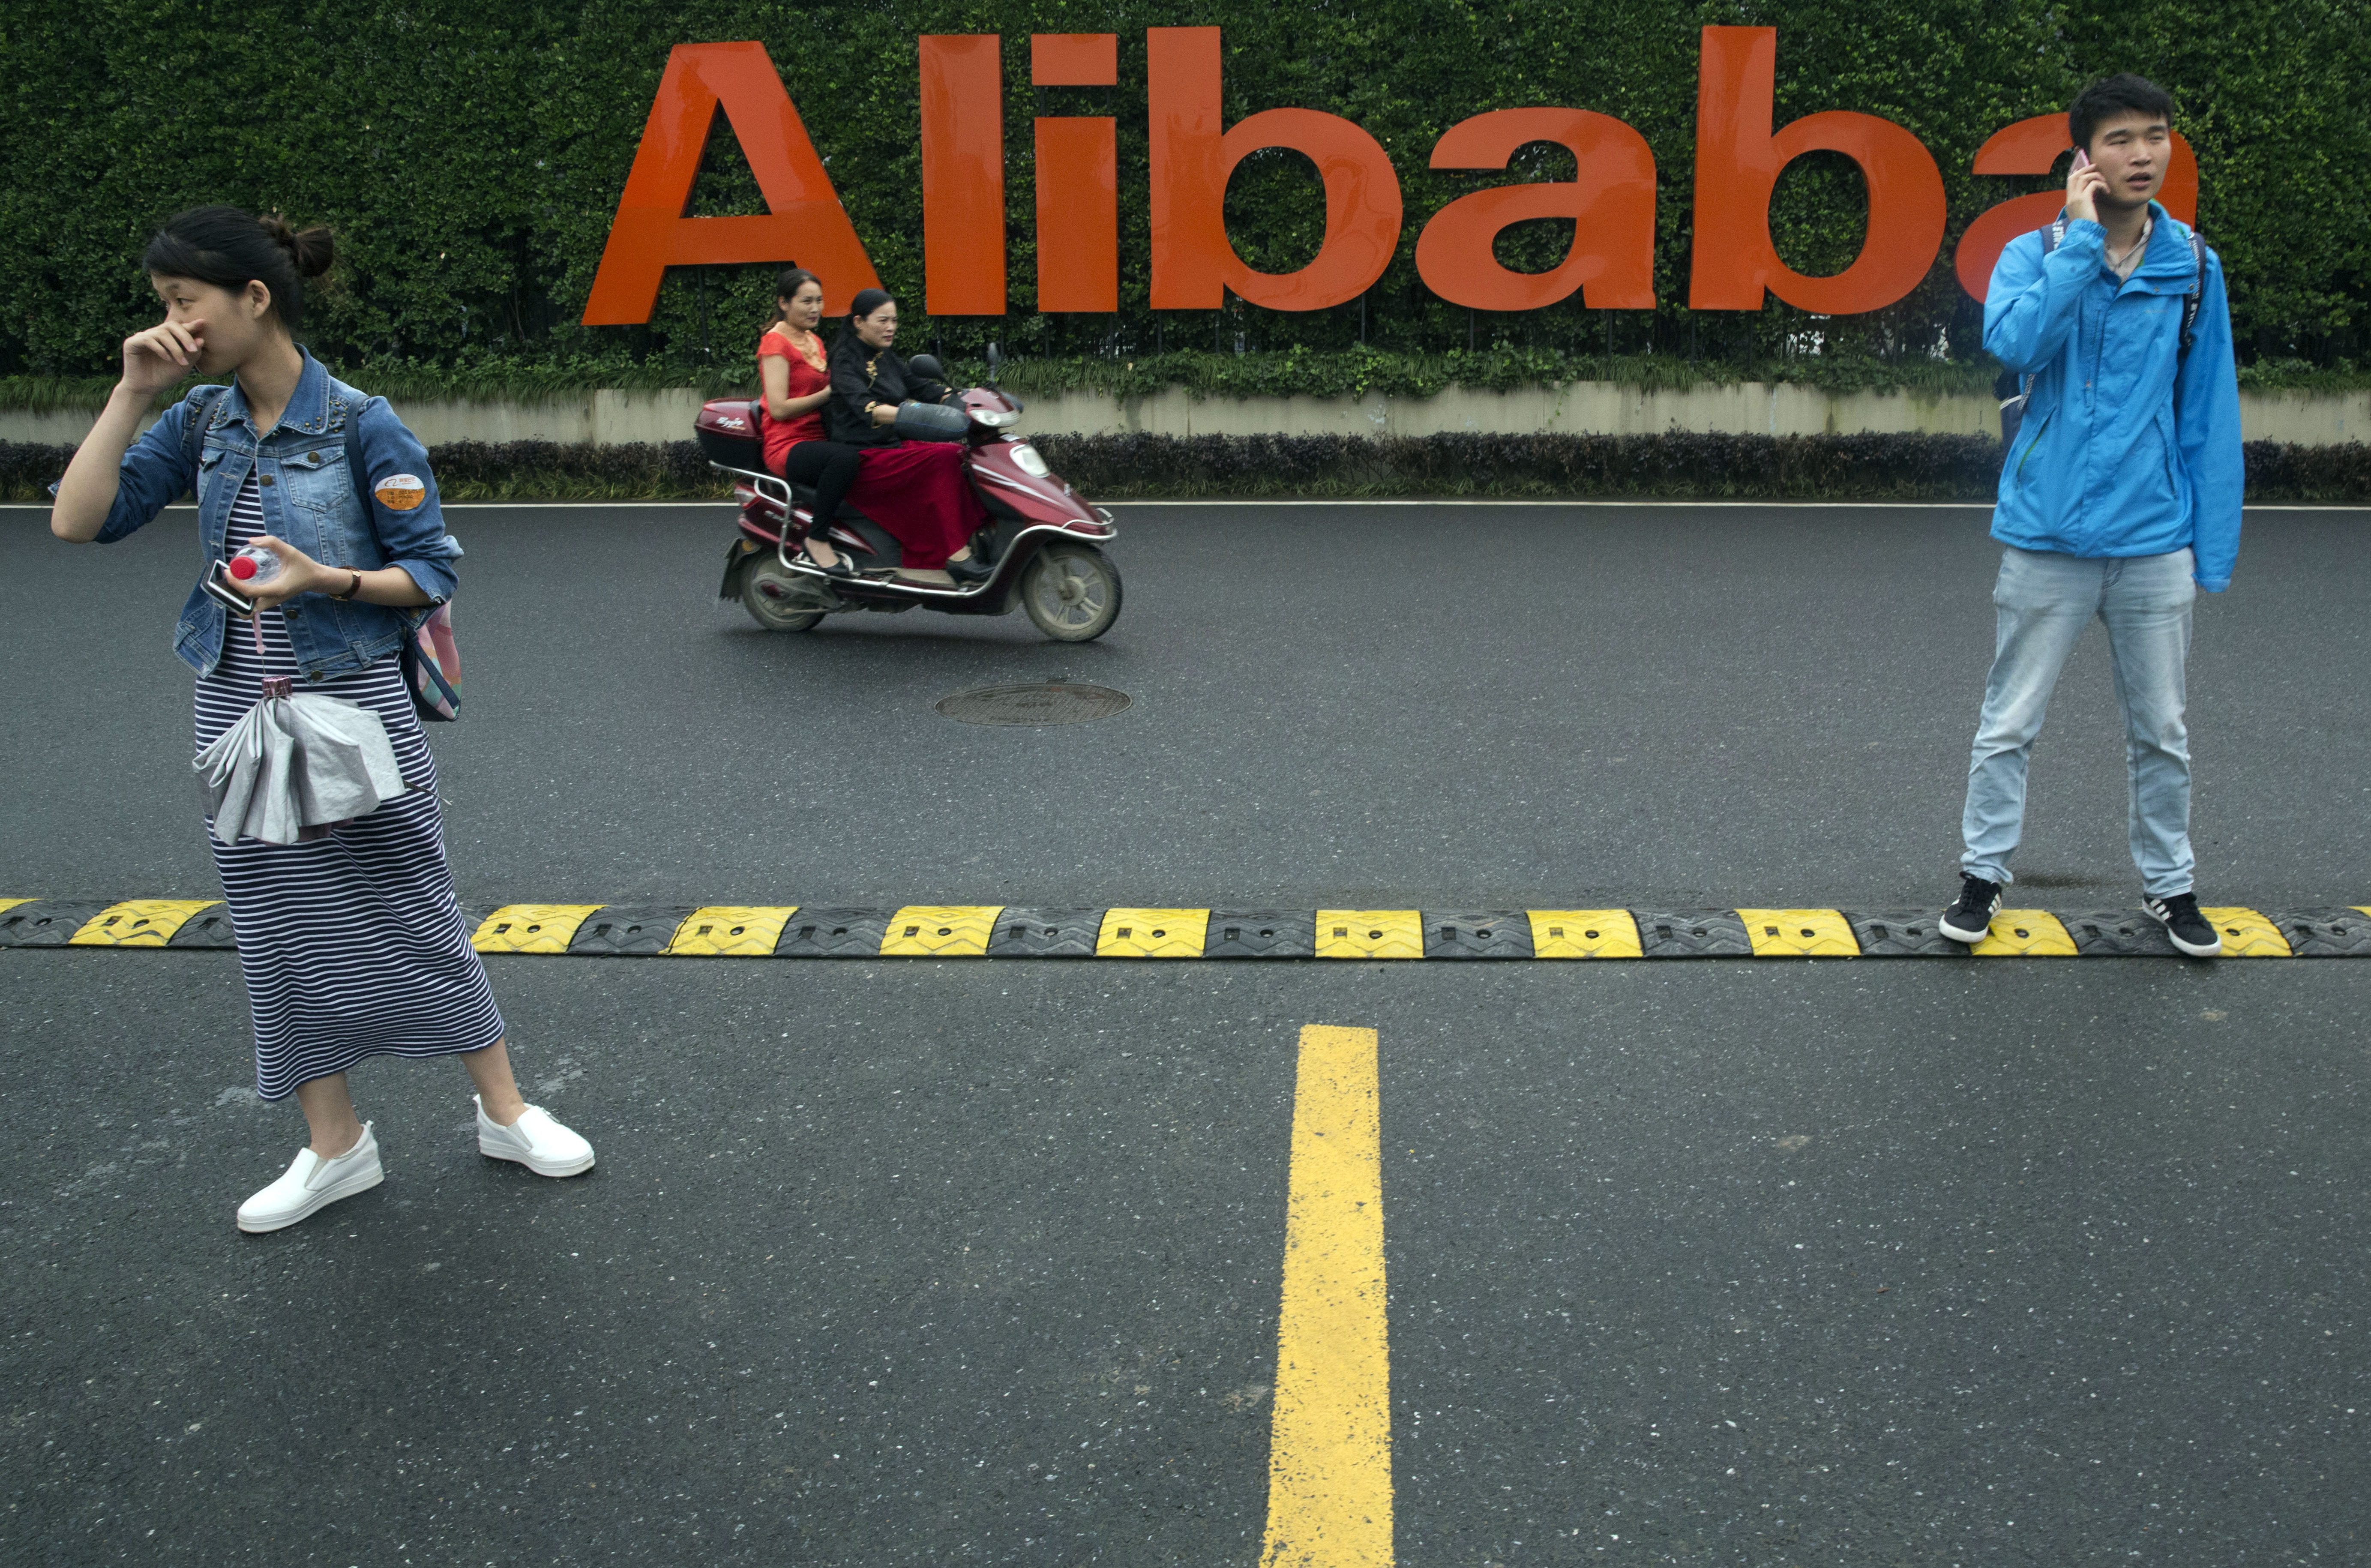 Workers stand near the company logo at the Alibaba Group headquarters in Hangzhou, China.